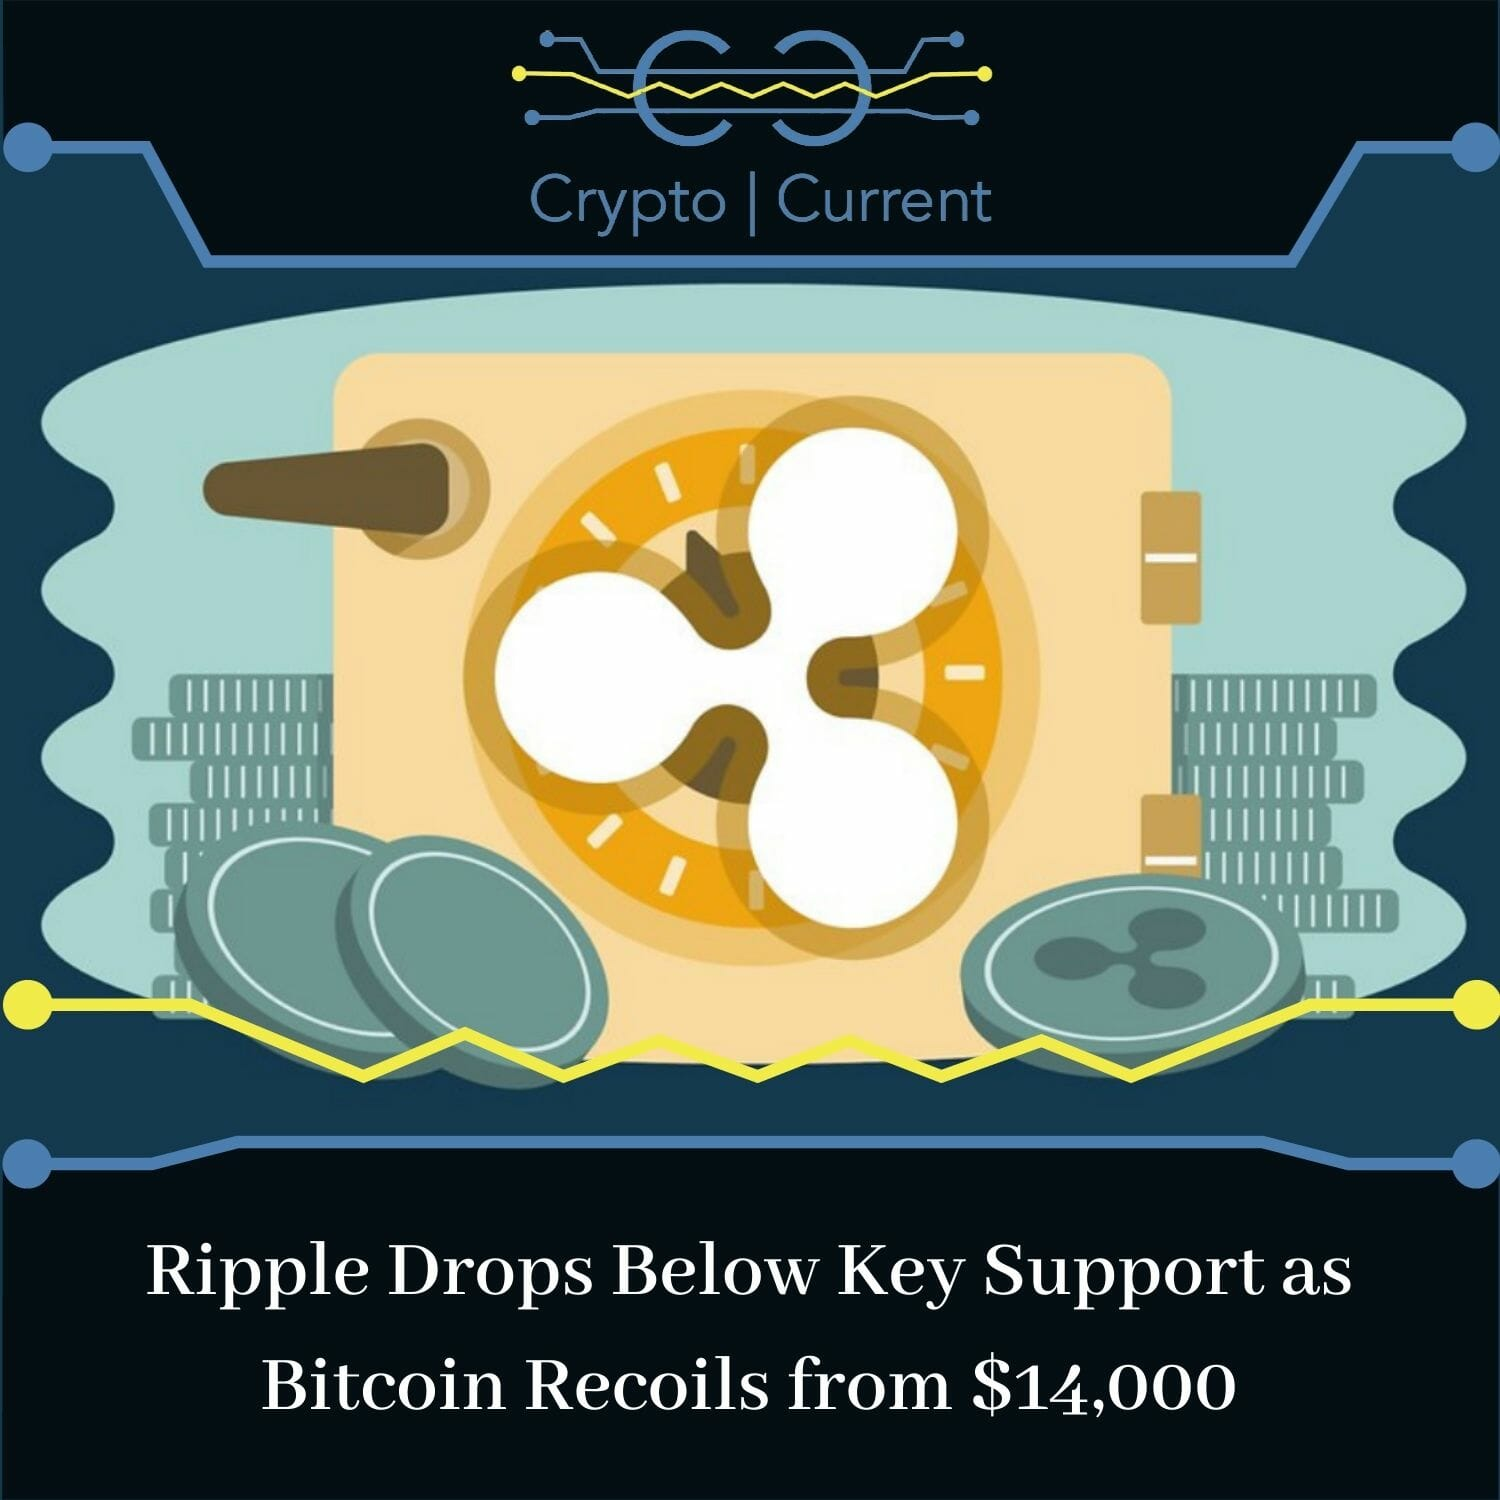 Ripple Drops Below Key Support as Bitcoin Recoils from $14,000